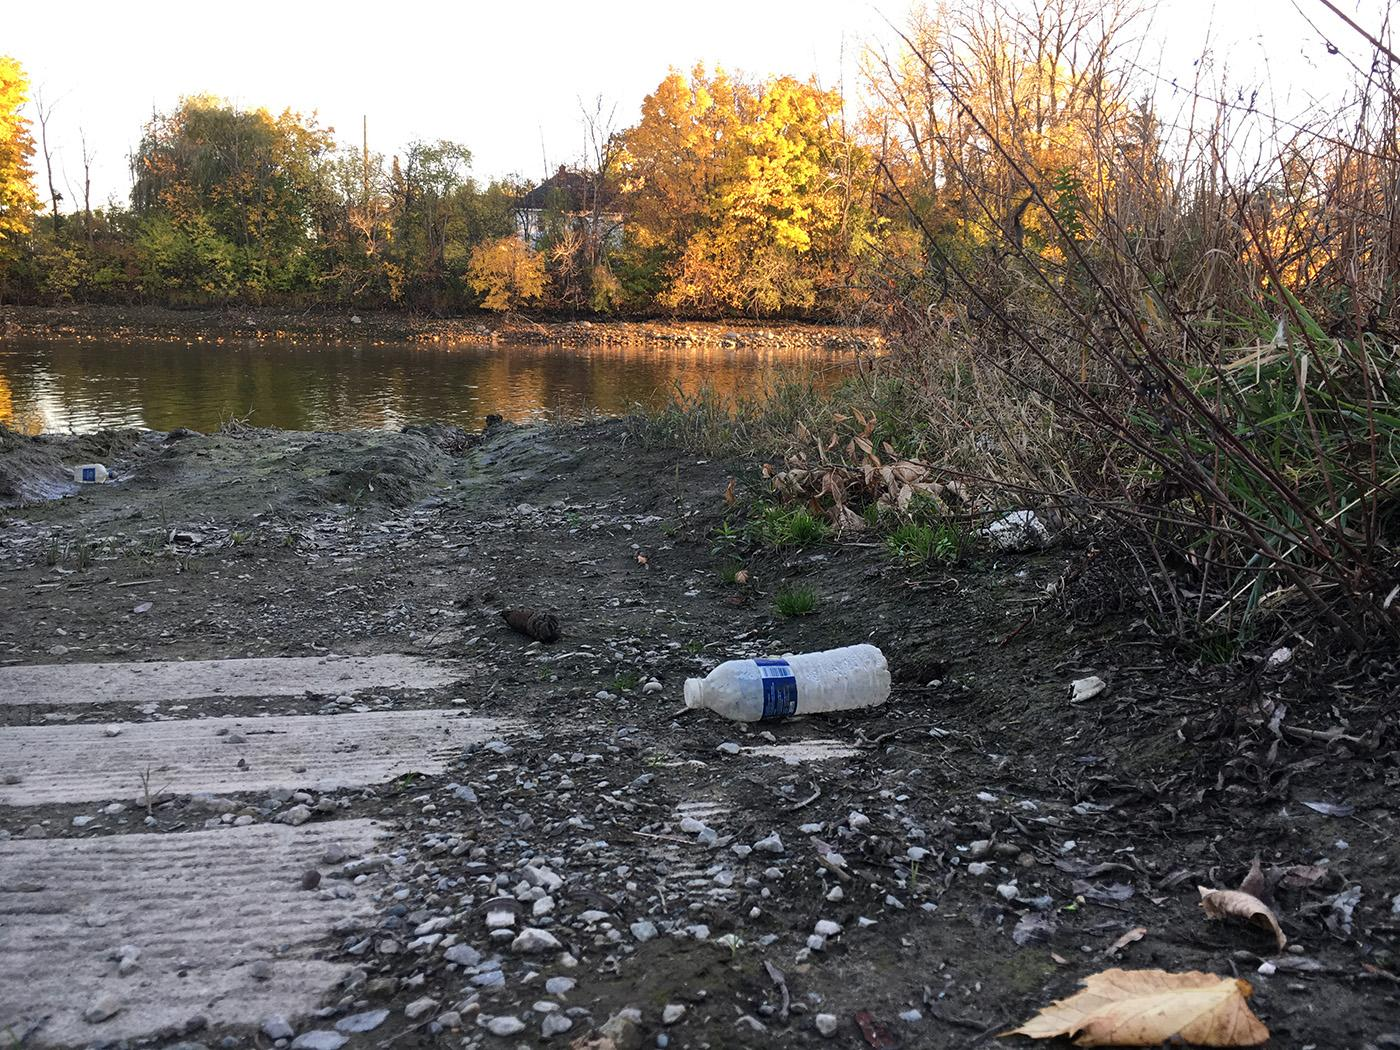 Water bottles littering the Flint River. Photo: Caitlin Saks/WGBH